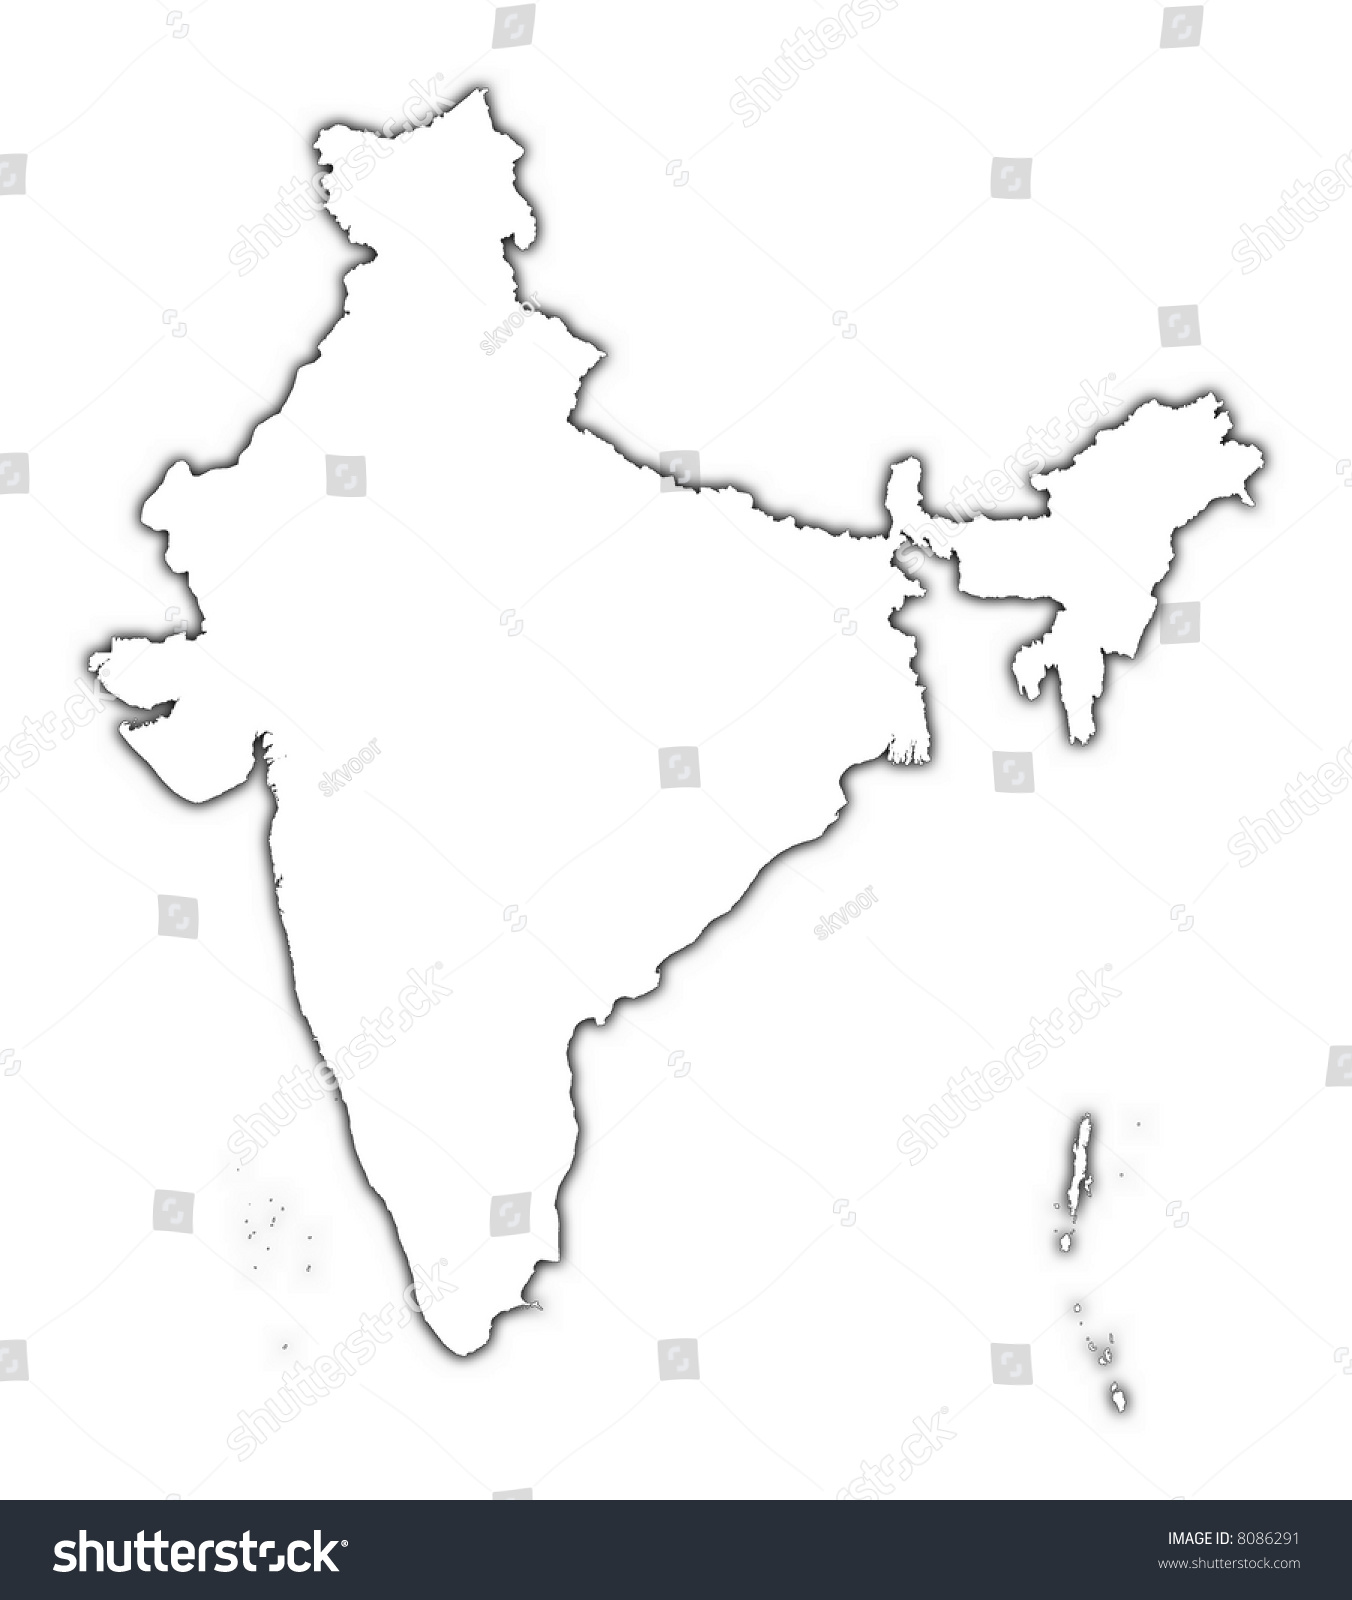 india outline map shadow detailed mercator stock illustration